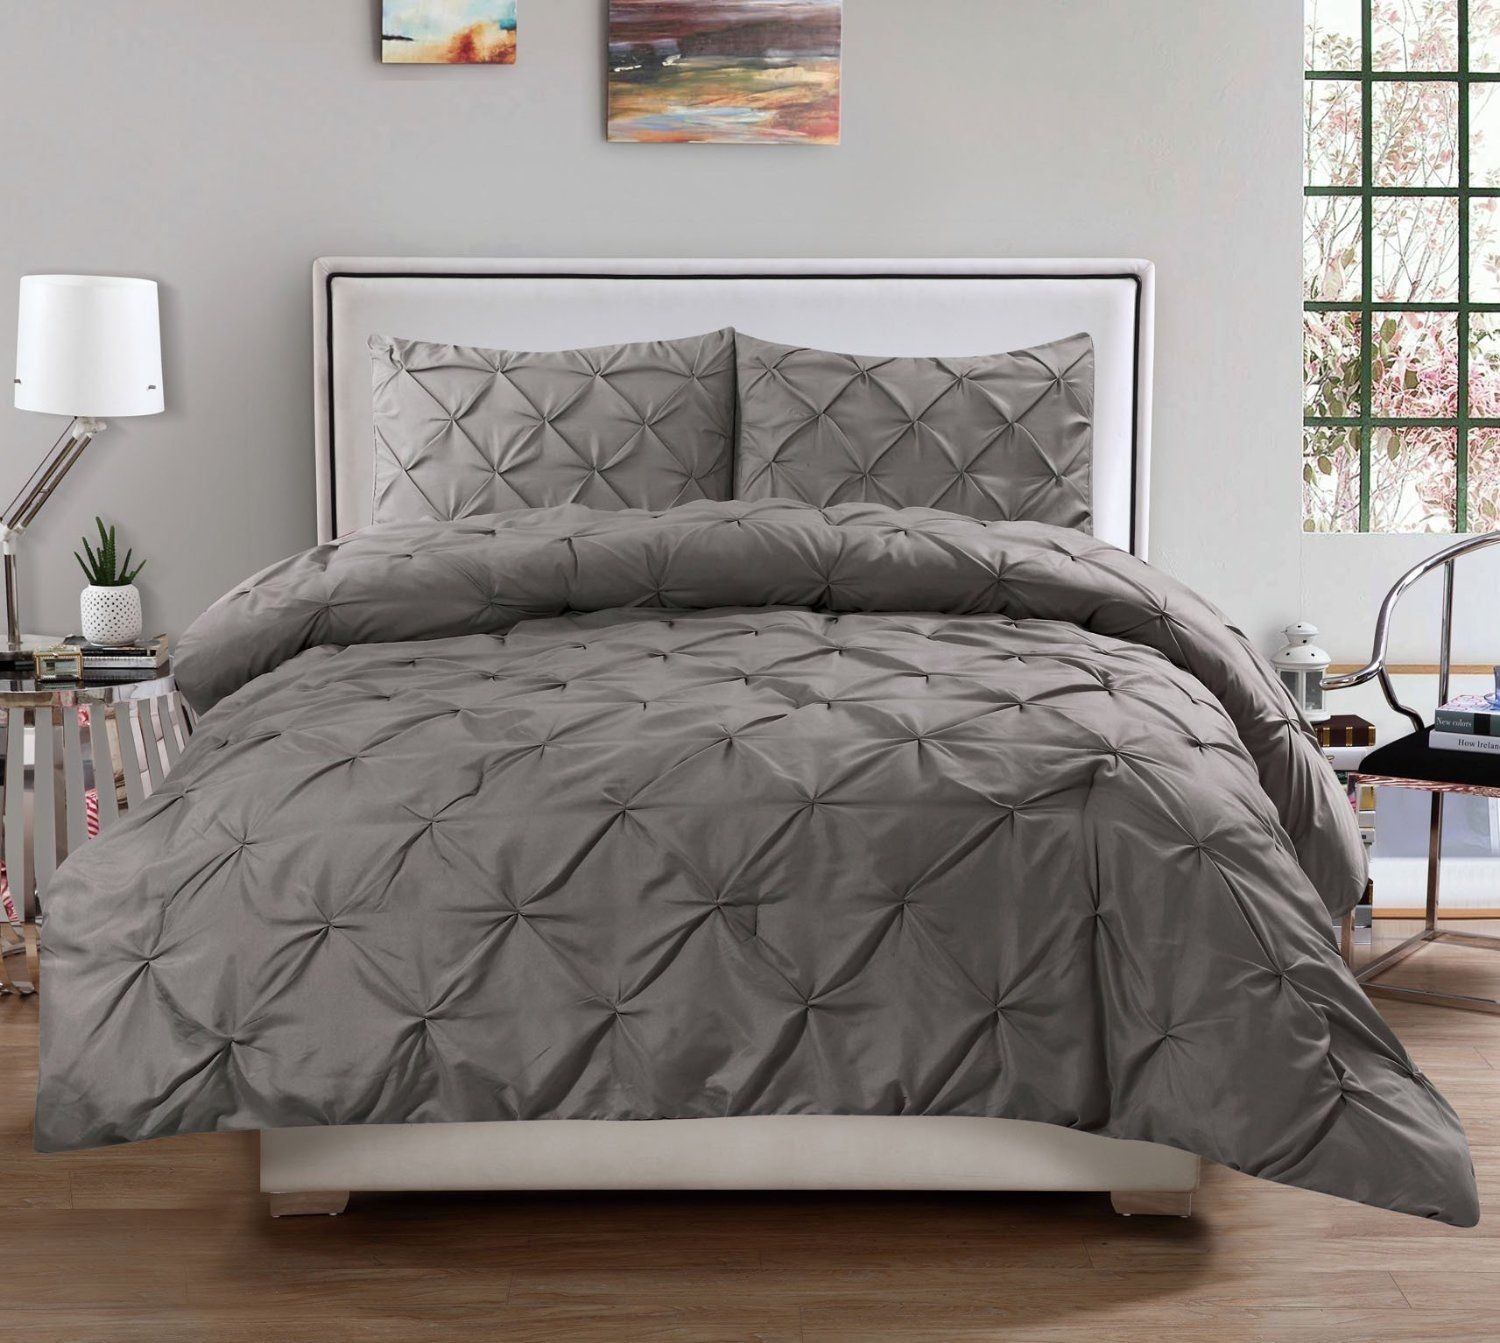 originalviews fancy viewsdownloads grey blue compelling sets bedding simple motif ideas embossed voguish design downloadspermalink comforter canada charcoal navy also total